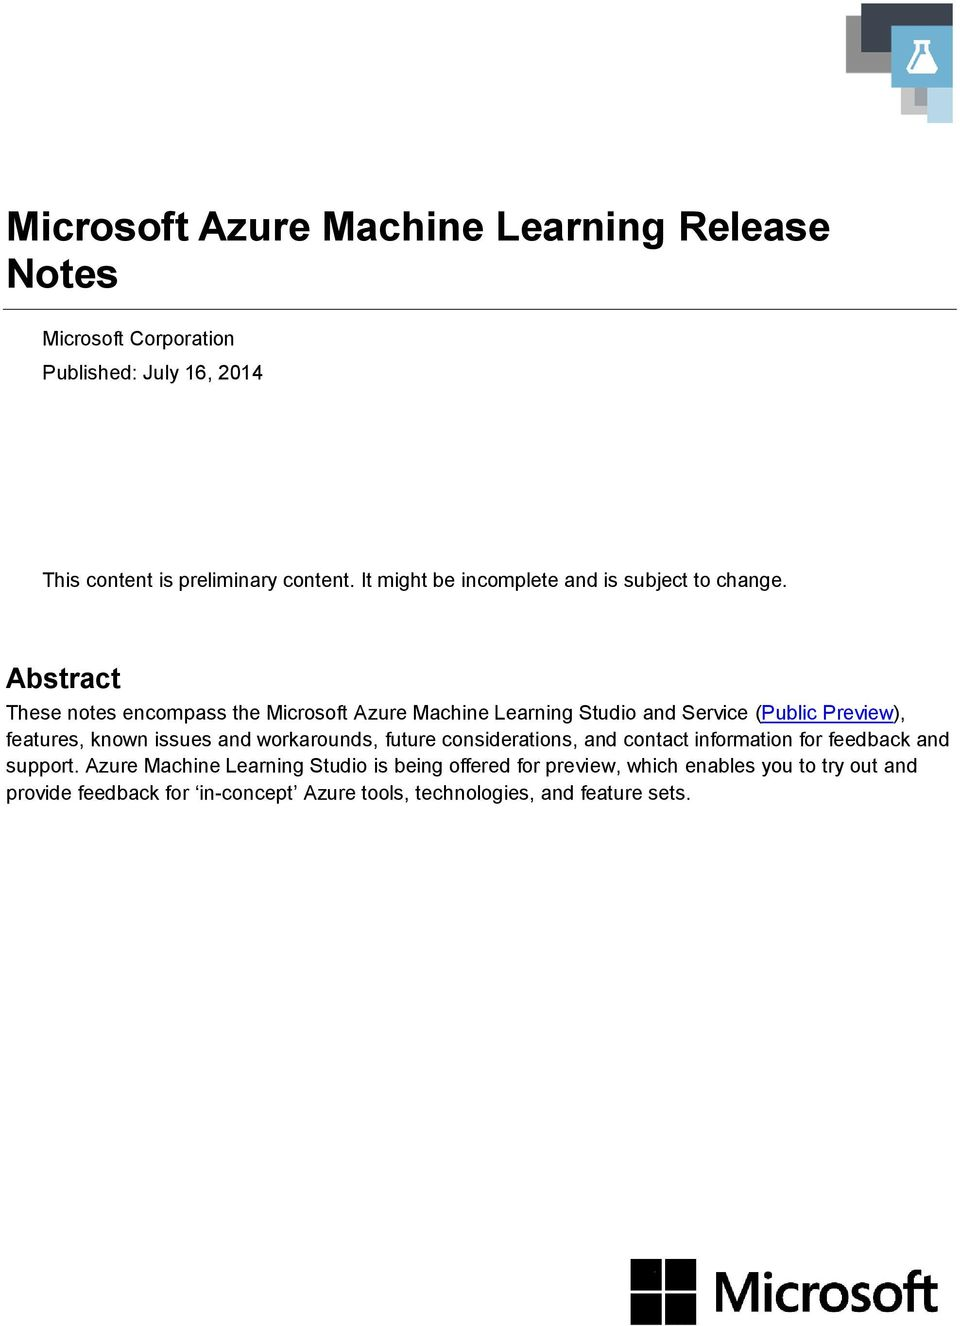 Abstract These notes encompass the Microsoft Azure Machine Learning Studio and Service (Public Preview), features, known issues and